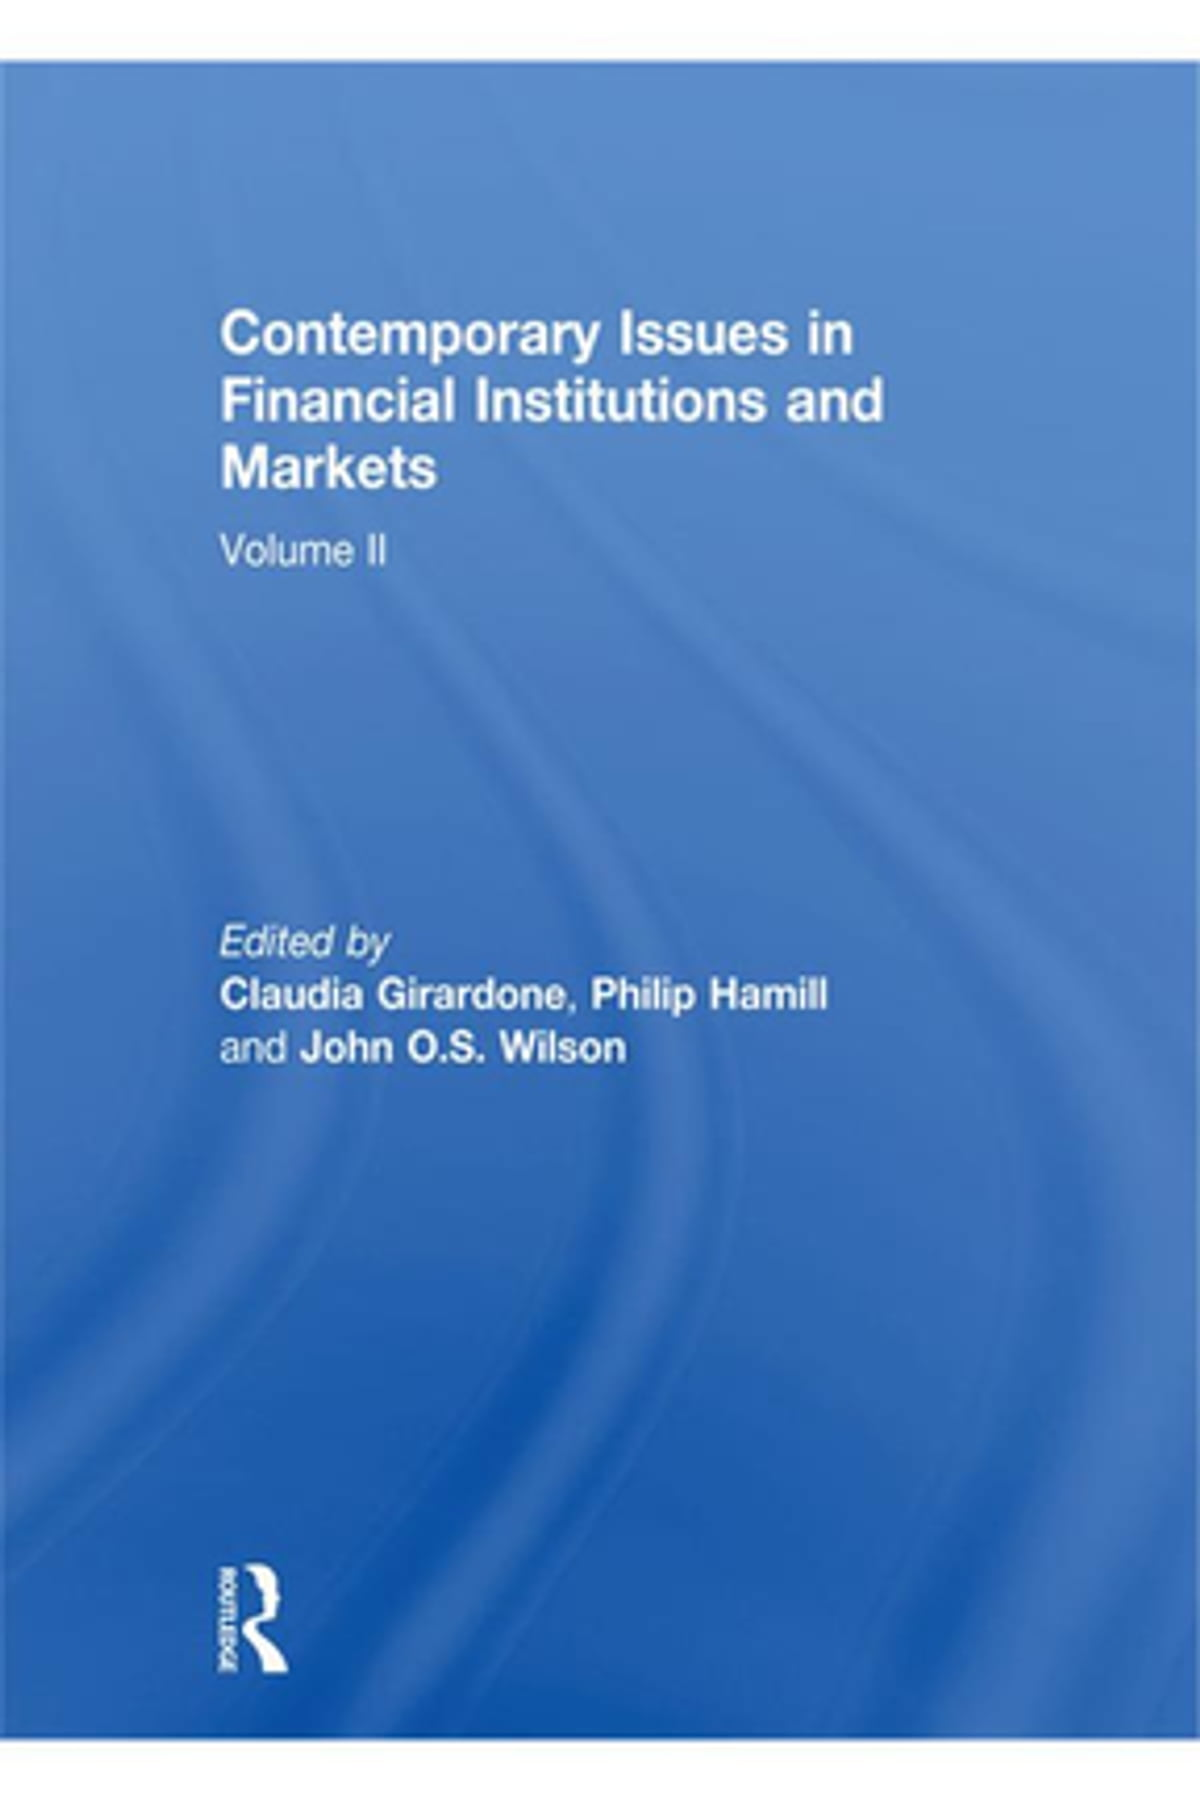 contemporary issues in financial management Contemporary issues in financial reporting challenges the reader to critically think through the issues and arguments involved in the practice of financial reporting it goes to the heart of the most difficult and controversial problems, investigating the major issues and commenting upon the solutions offered in financial reporting literature.